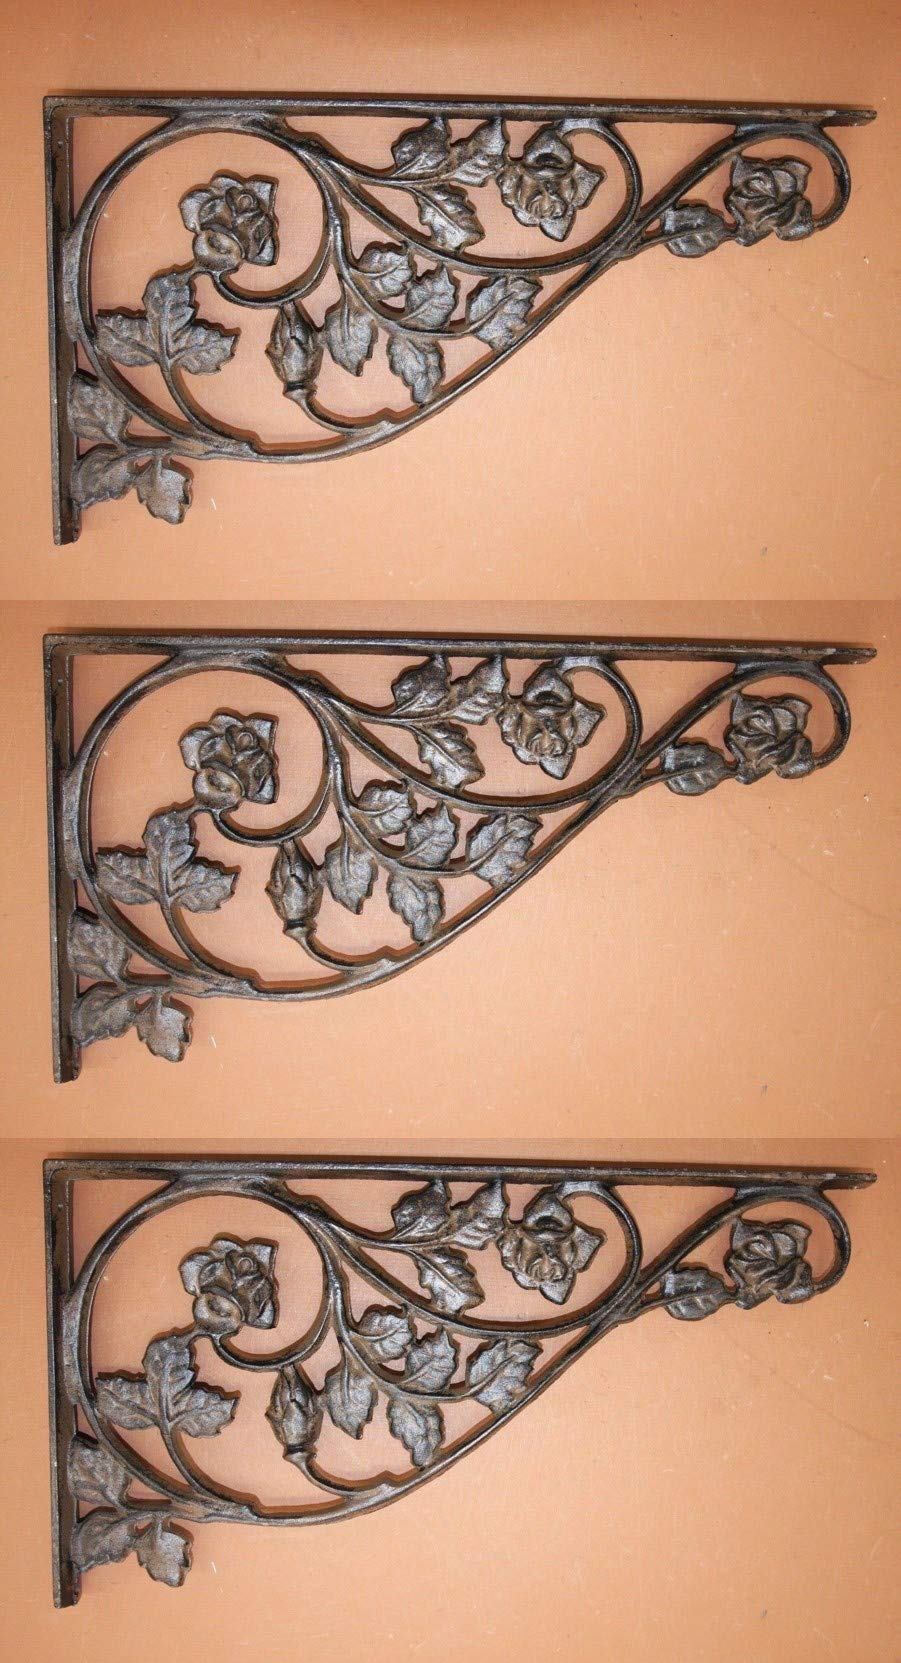 Southern Metal Set of 3 Extra Large Cast Iron Patio Corbels 16 7/8'' Rose Design, B-20